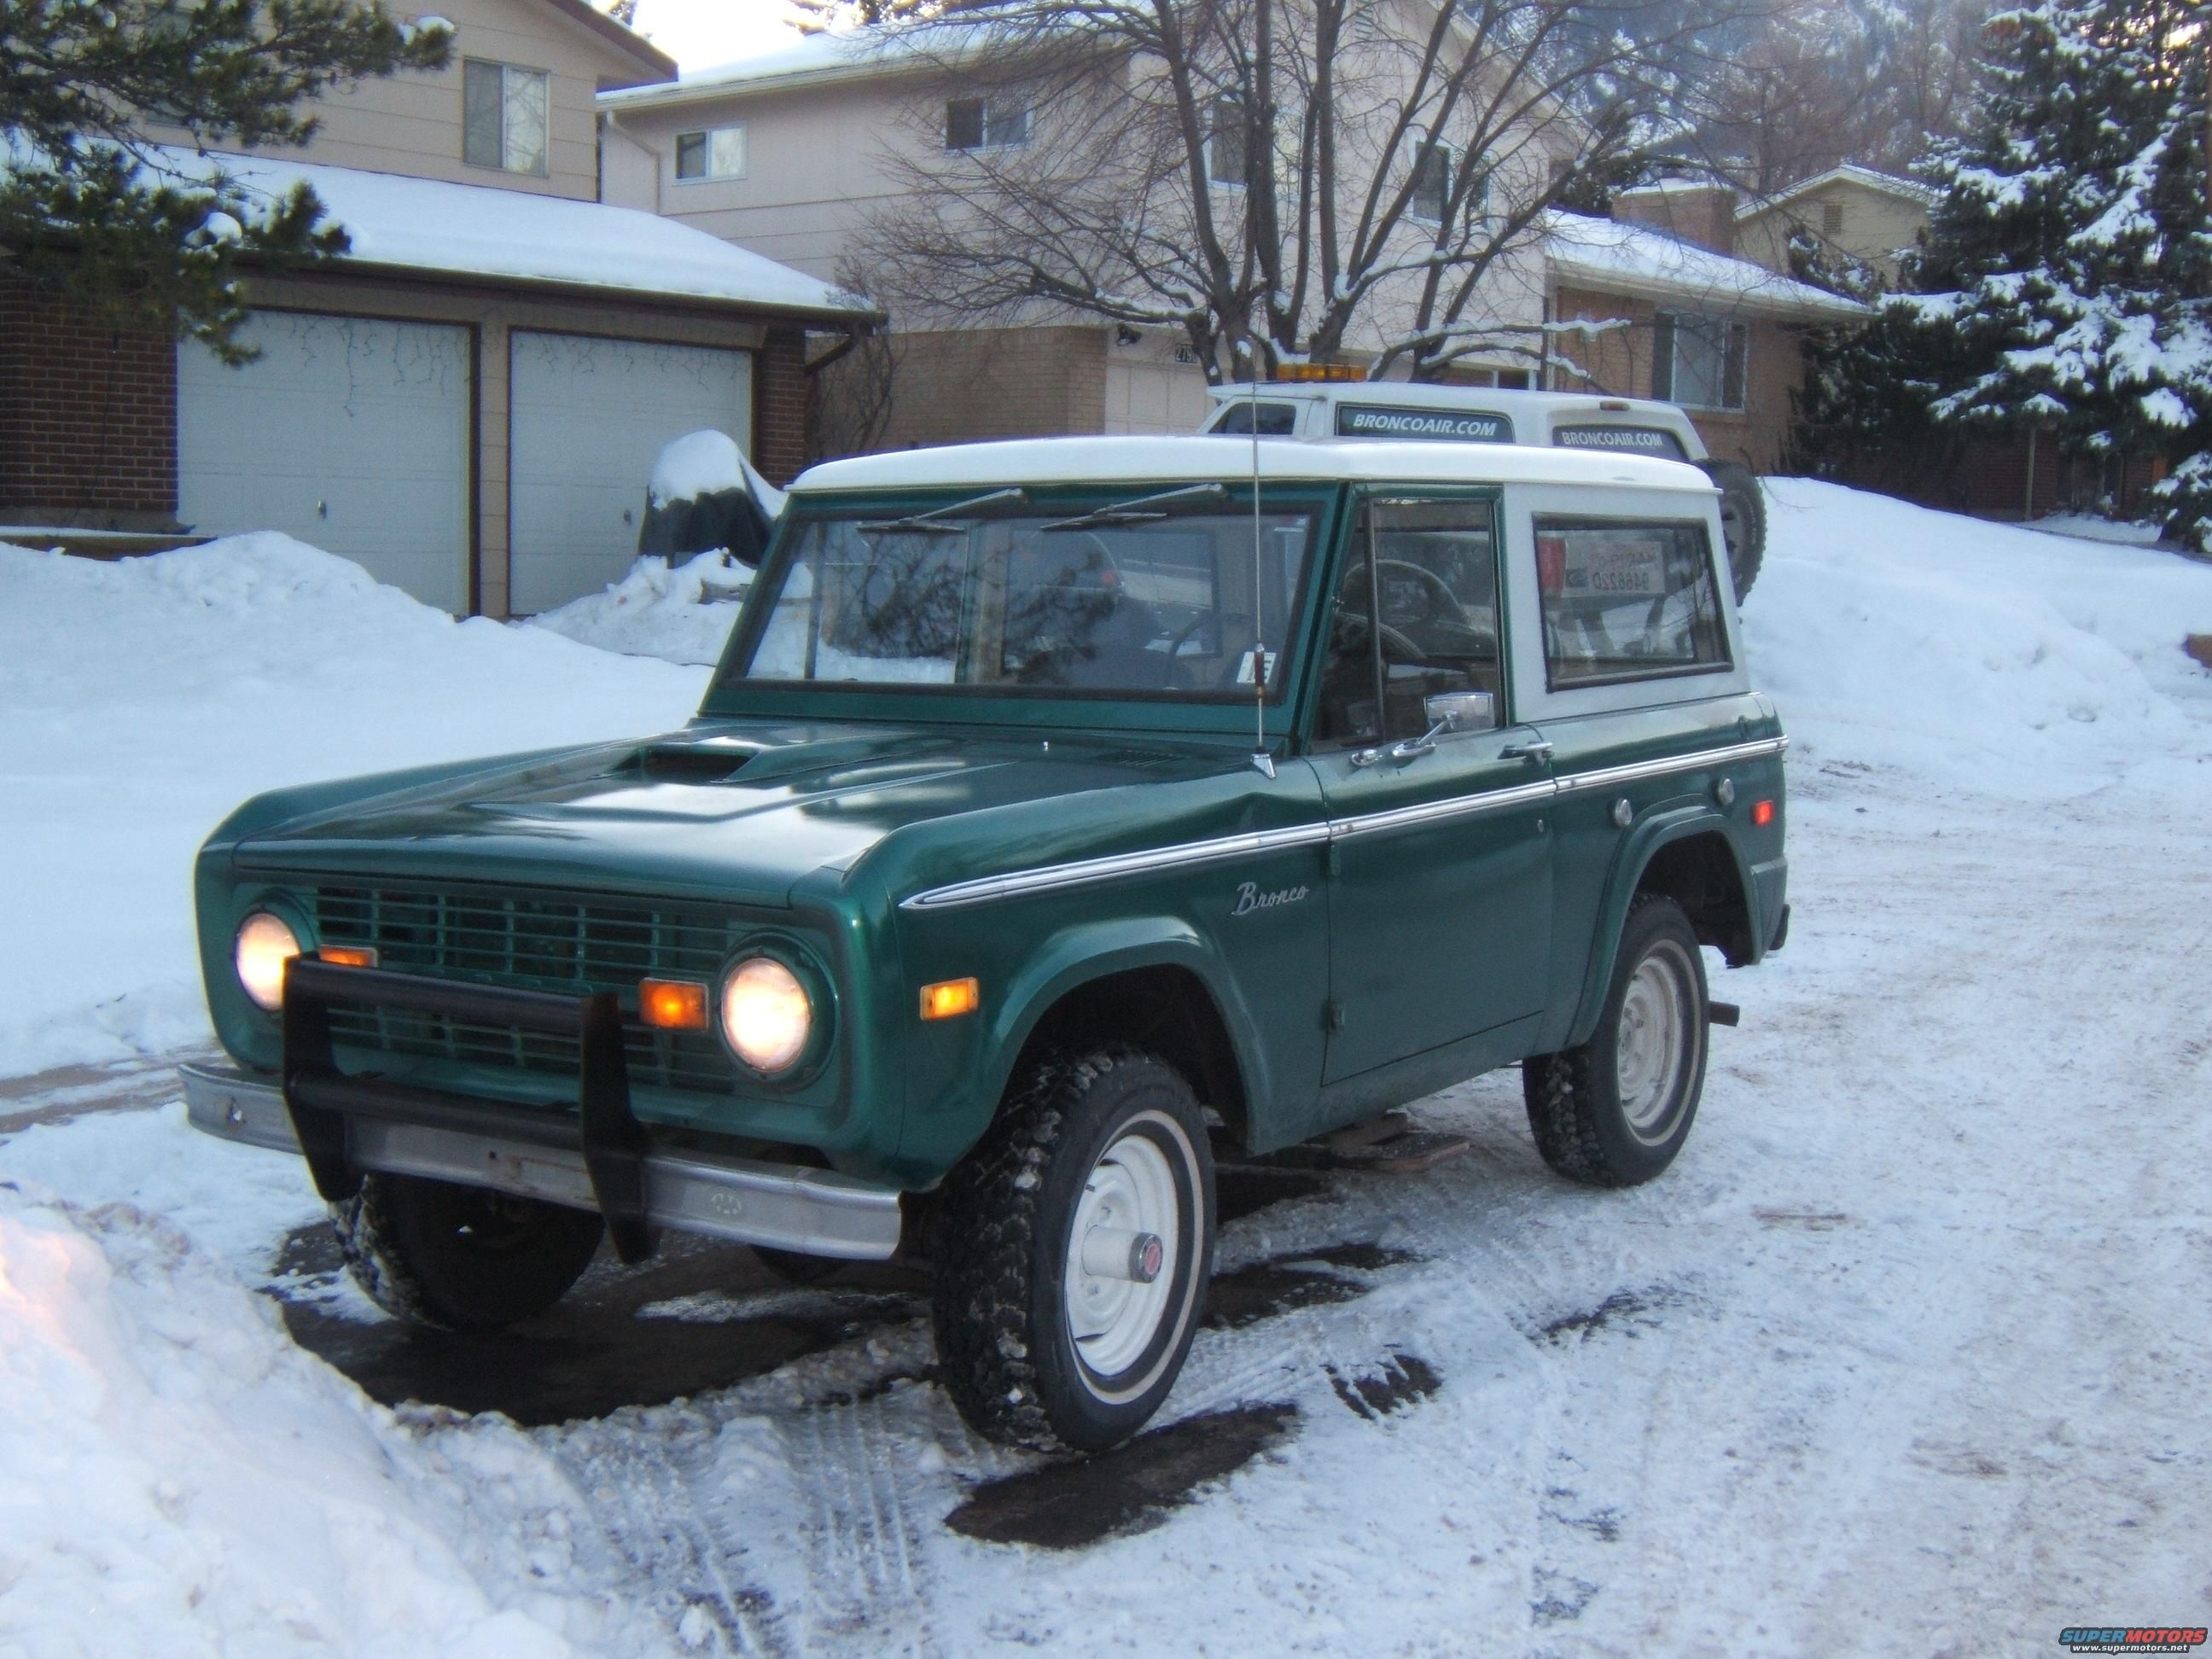 Classic Ford Bronco early SUV | Vintage 4x4 | Pinterest | Ford ...